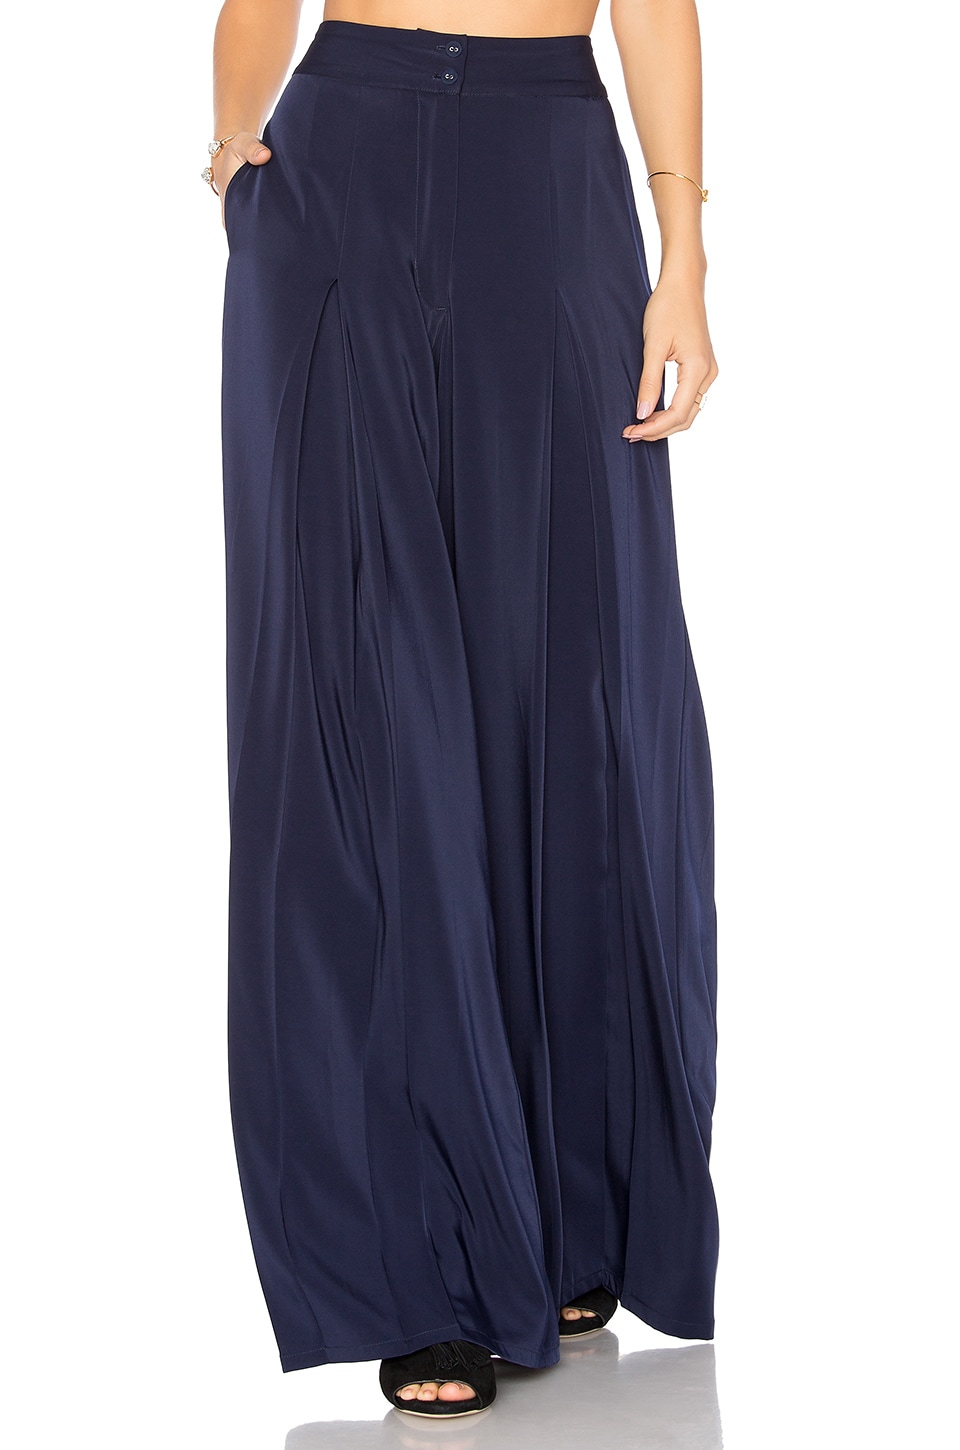 House of Harlow 1960 x REVOLVE Moore Pants in Navy